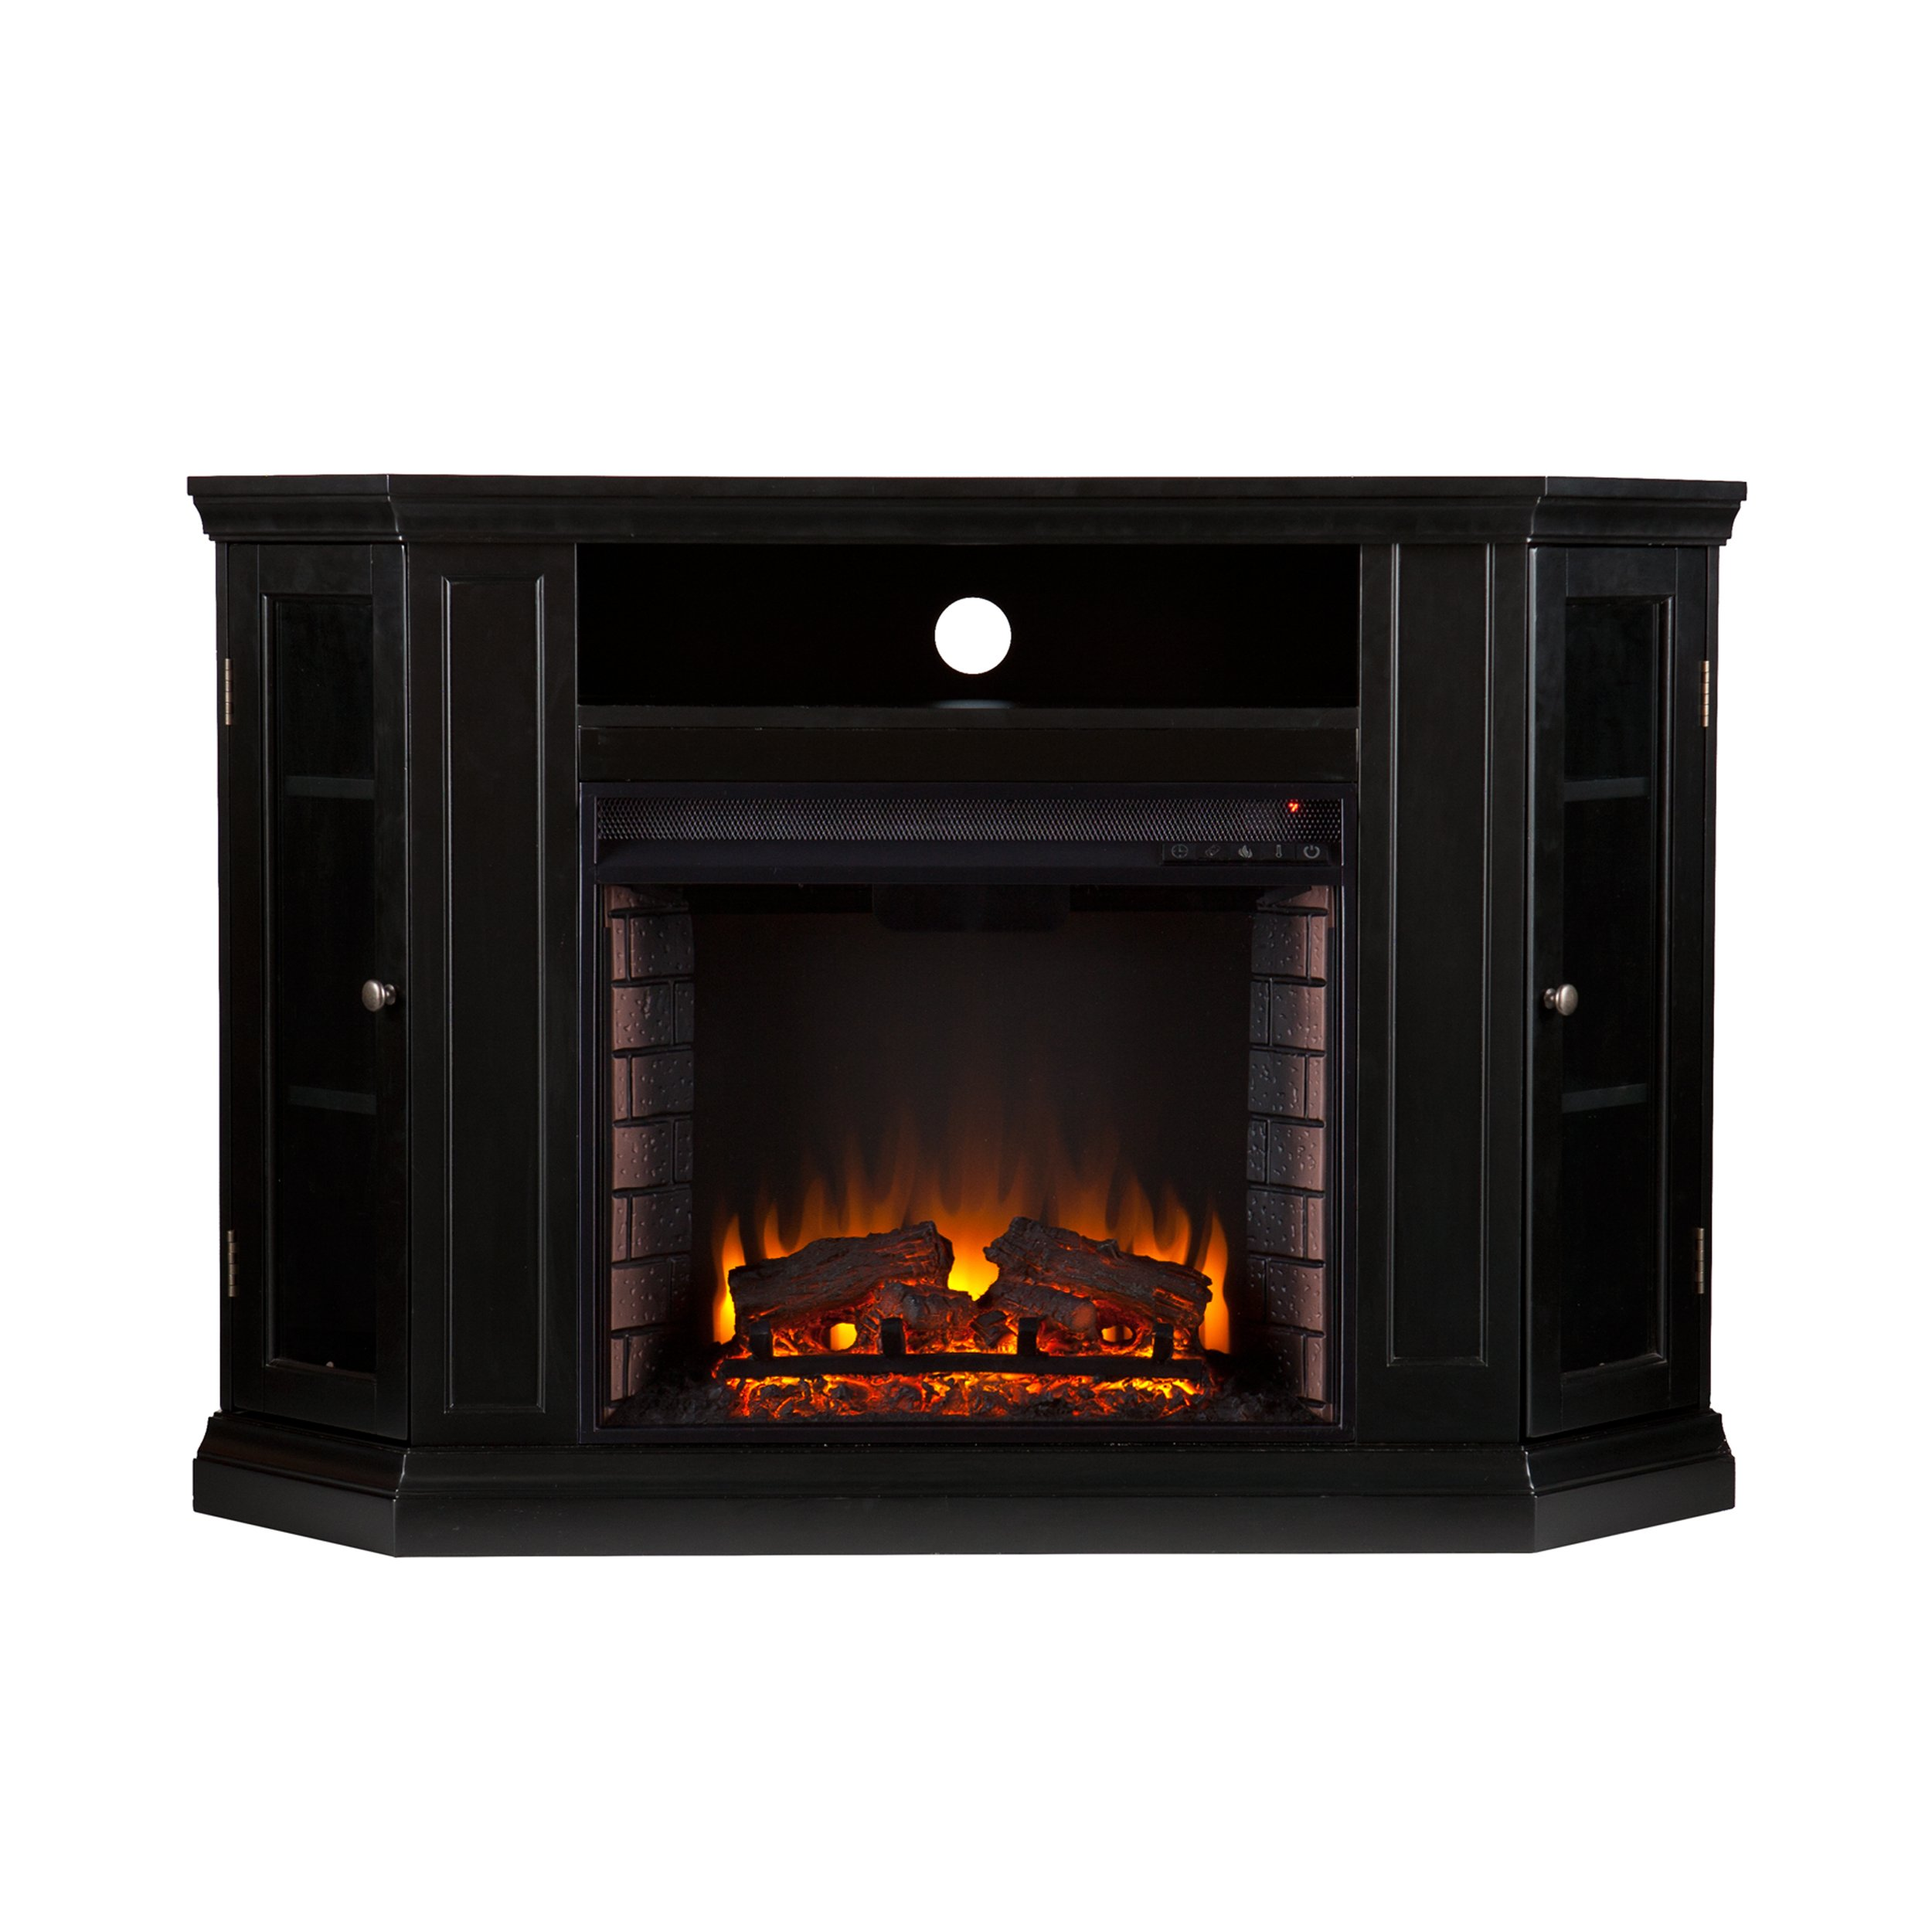 Southern Enterprises Claremont Convertible Media Electric Fireplace 48'' Wide, Black Finish